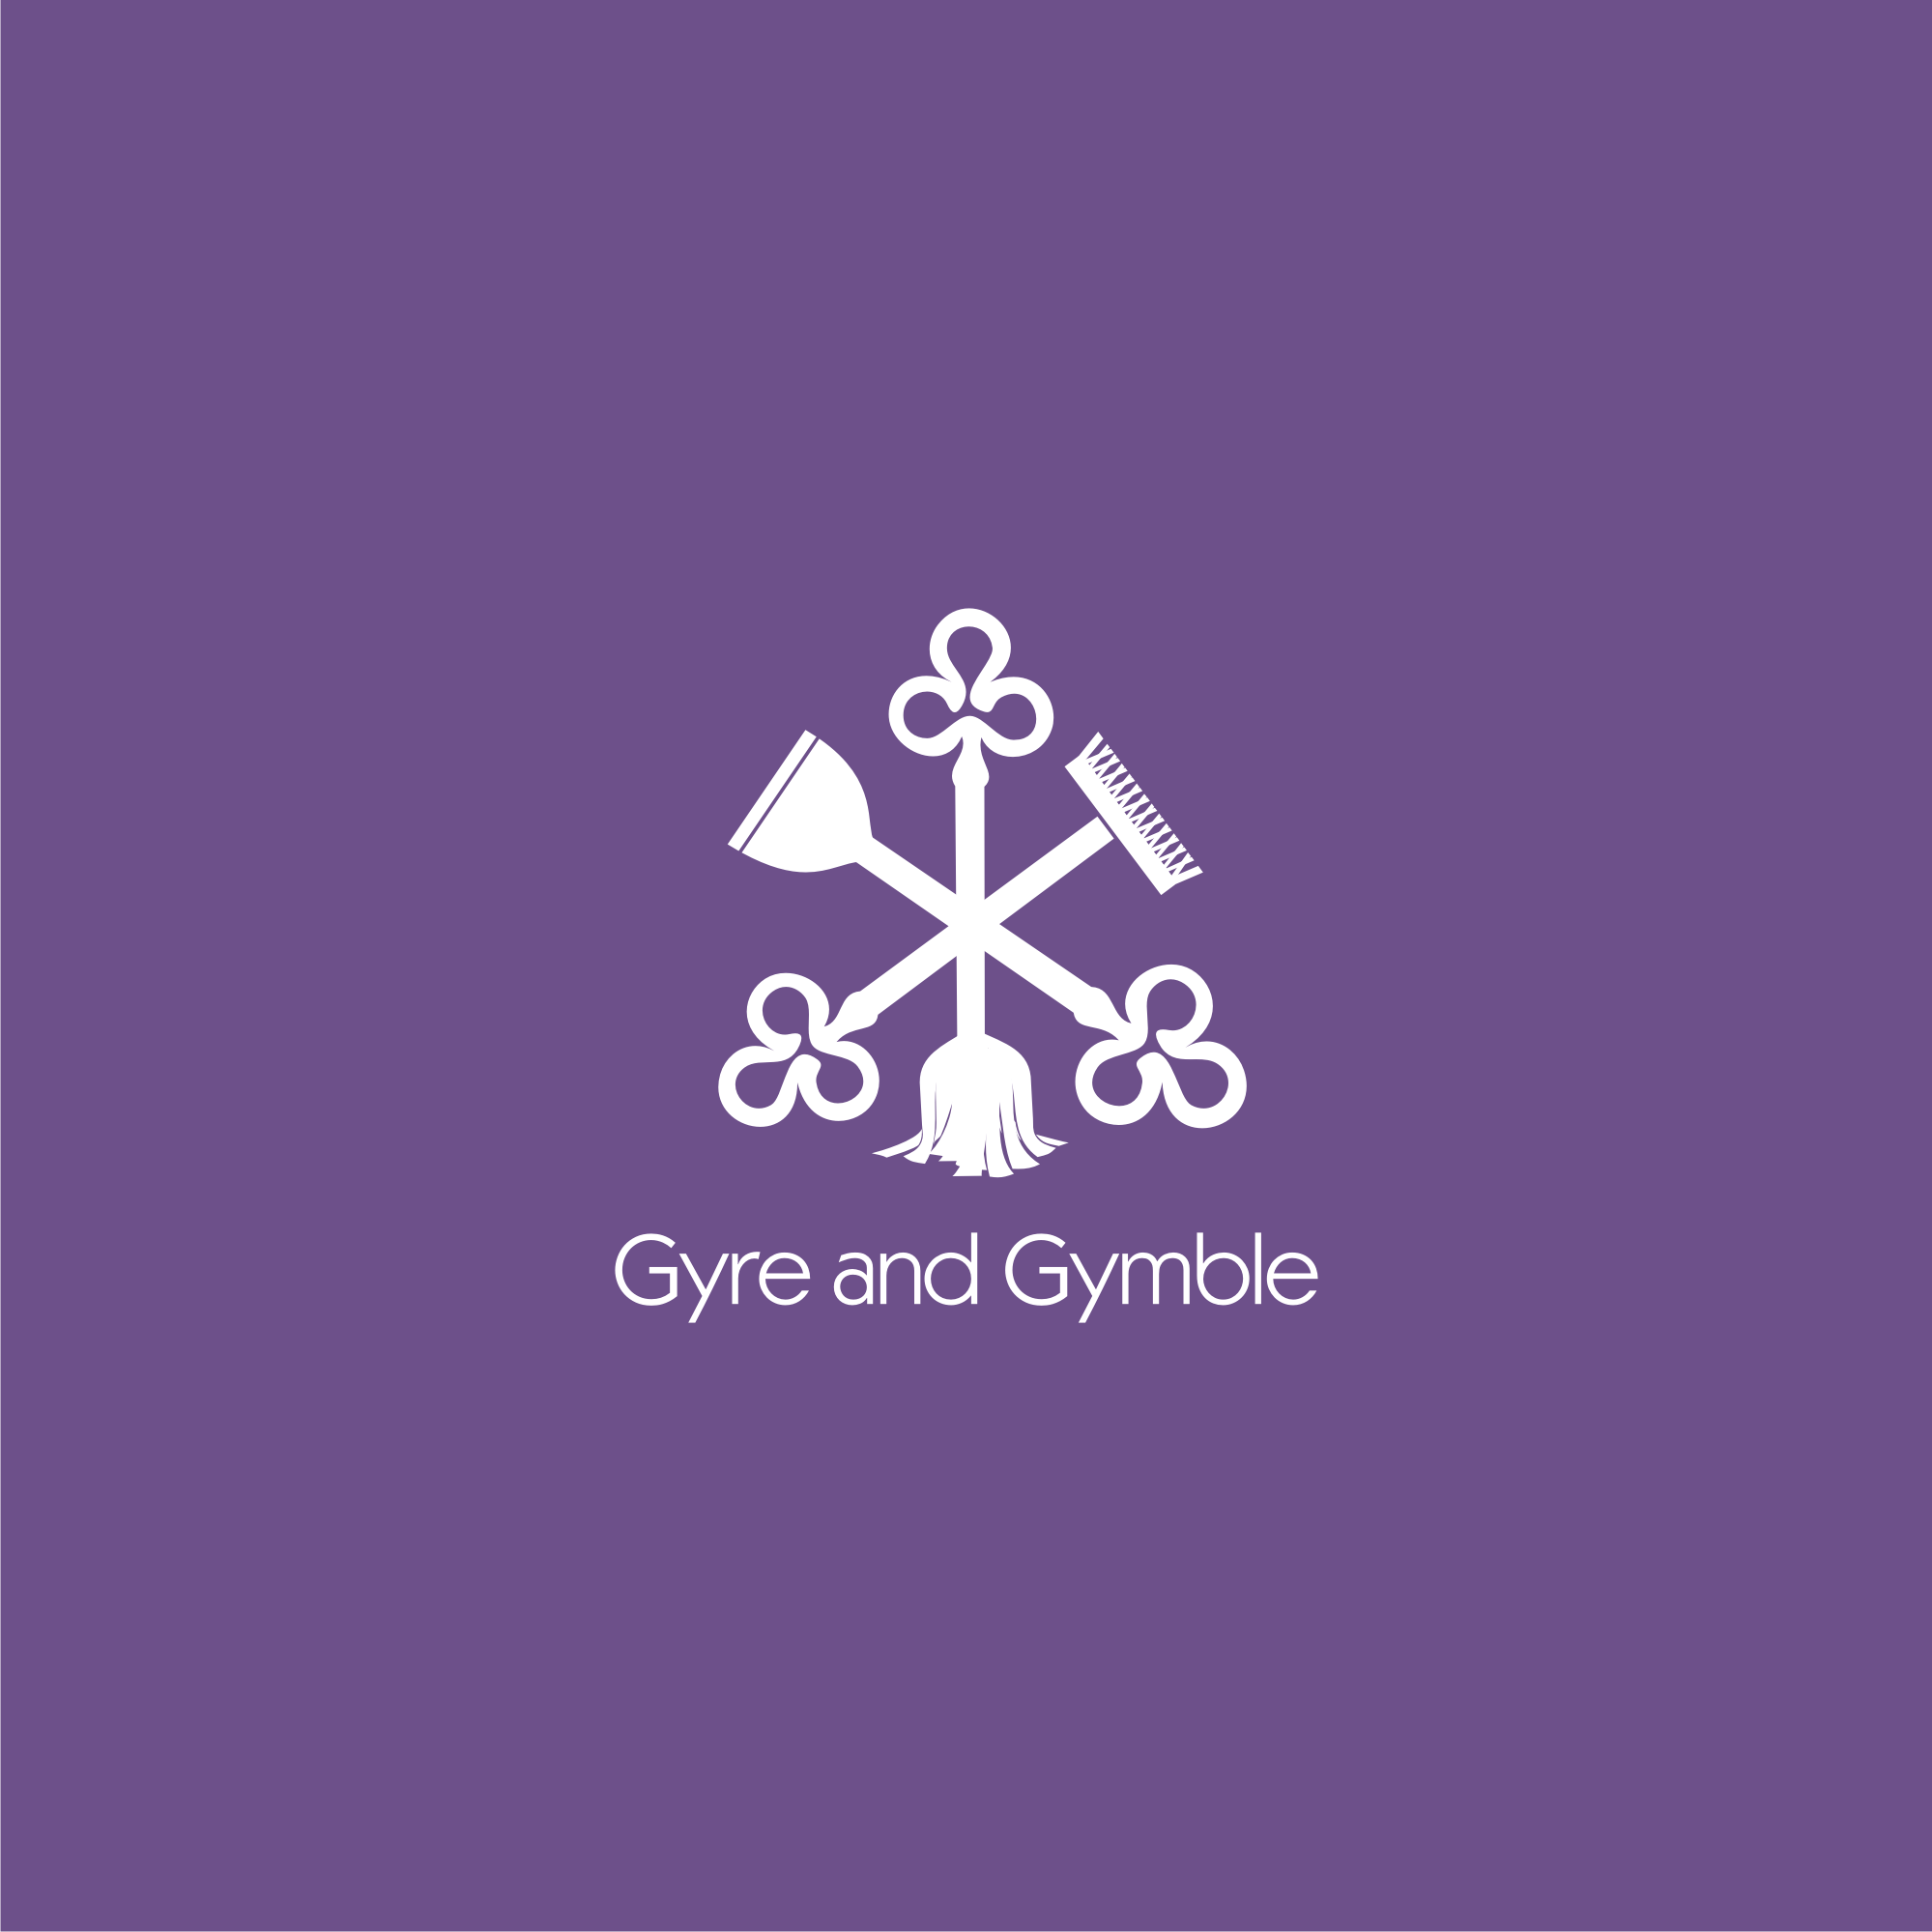 Create a logo and brand identity for Gyre & Gymble